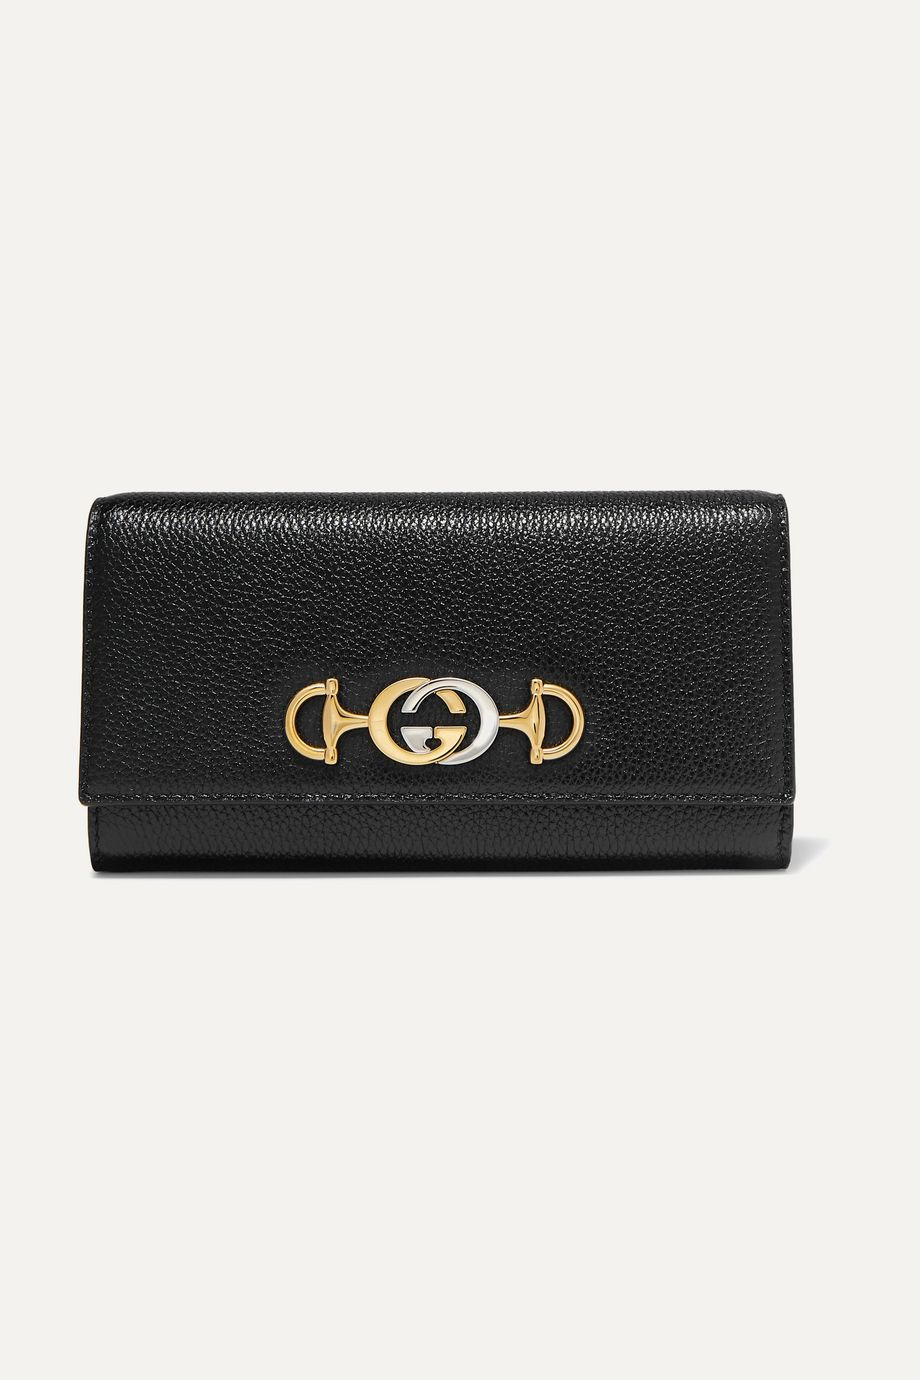 Gucci Zumi embellished textured-leather continental wallet